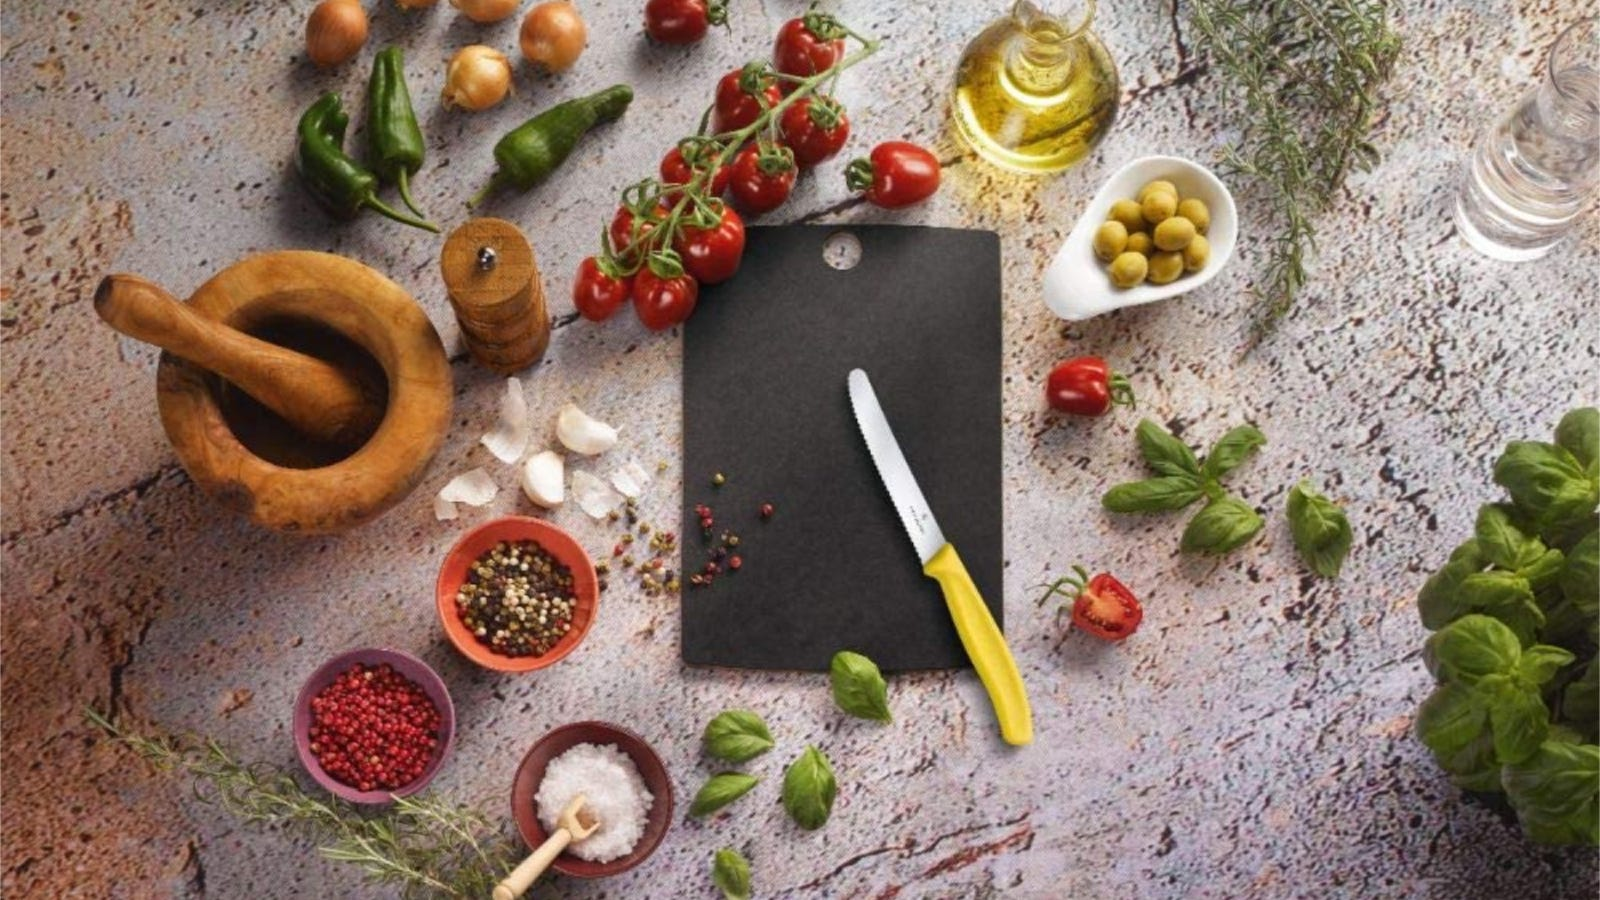 A small black cutting board with a serrated Victorinox knife with several aromatic ingredients surrounding the knife and board.